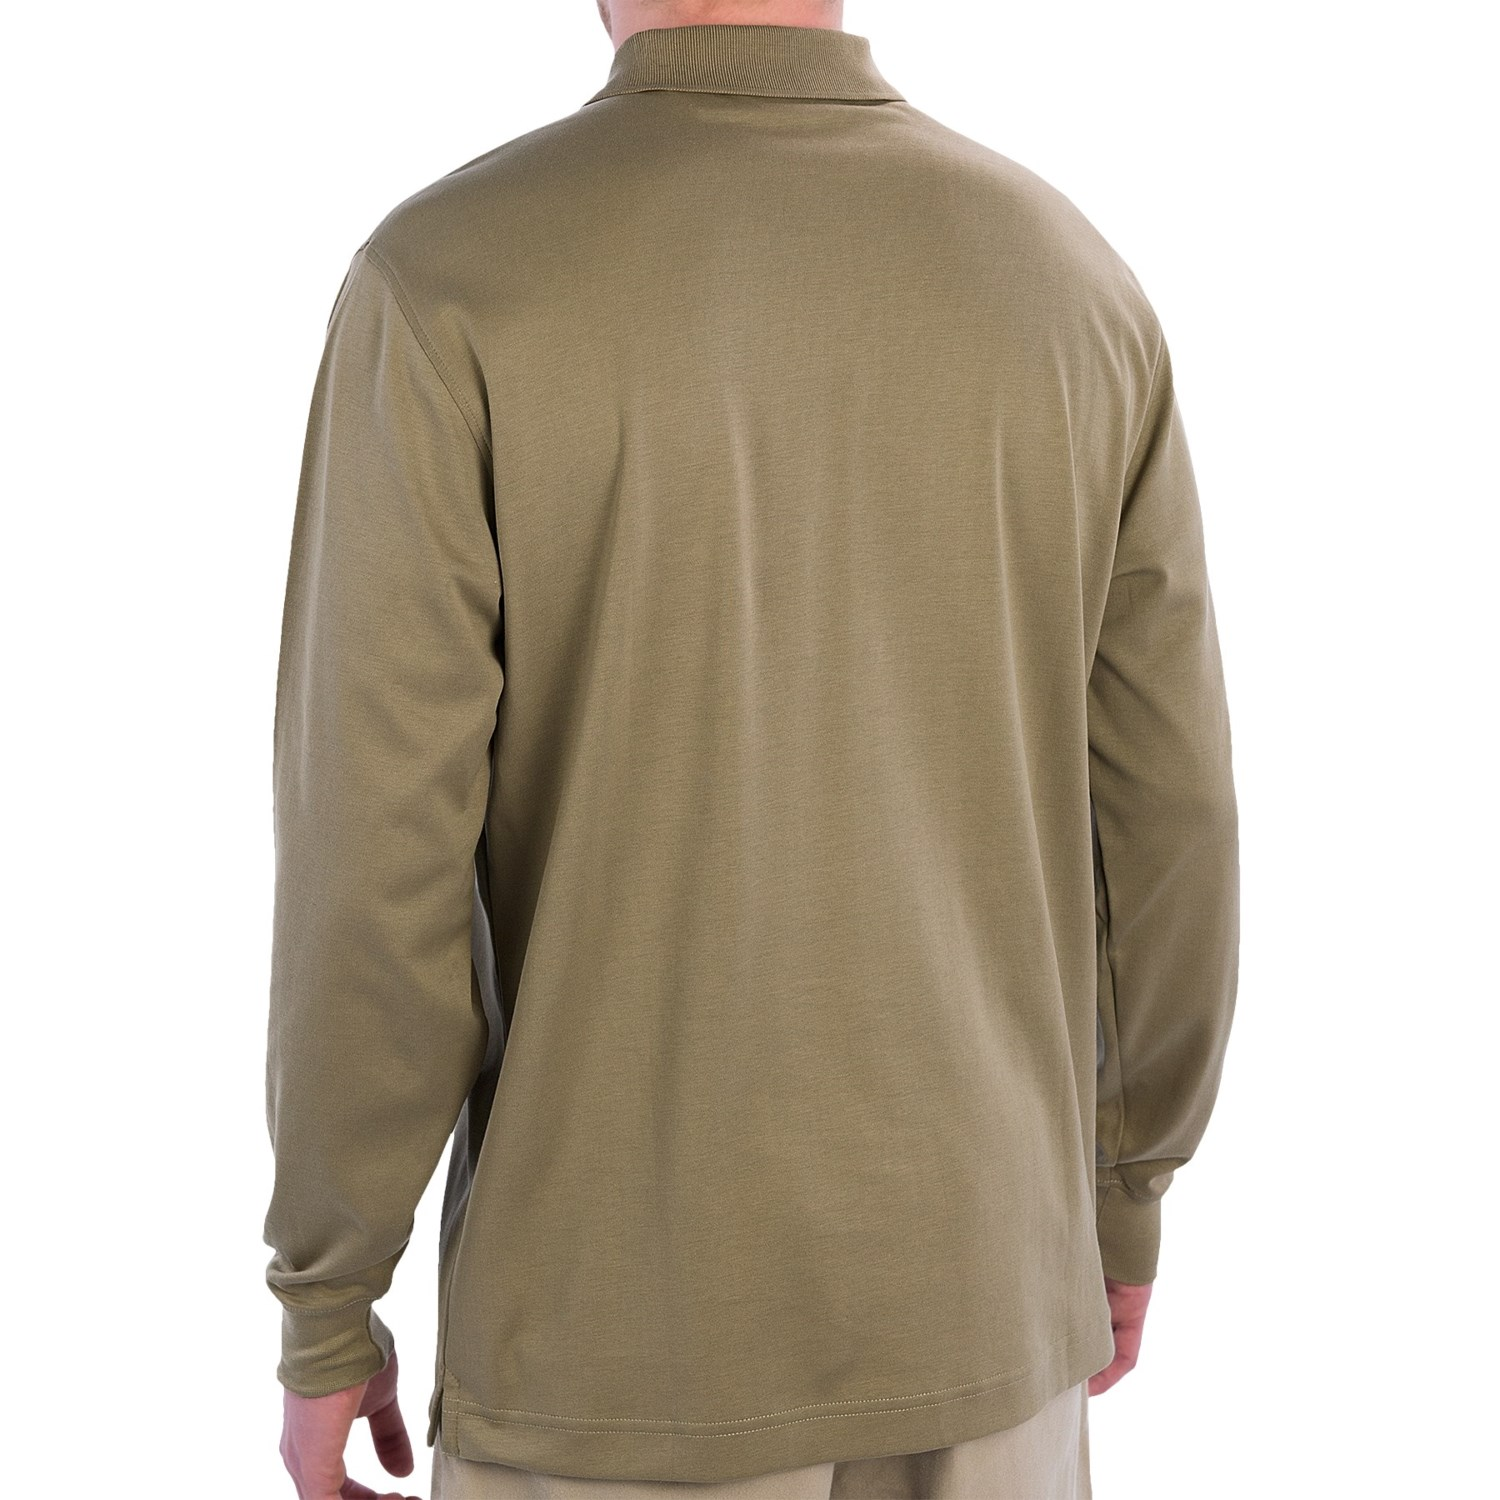 9214y 2 scott barber pima cotton polo shirt long sleeve for Cotton polo shirts for men